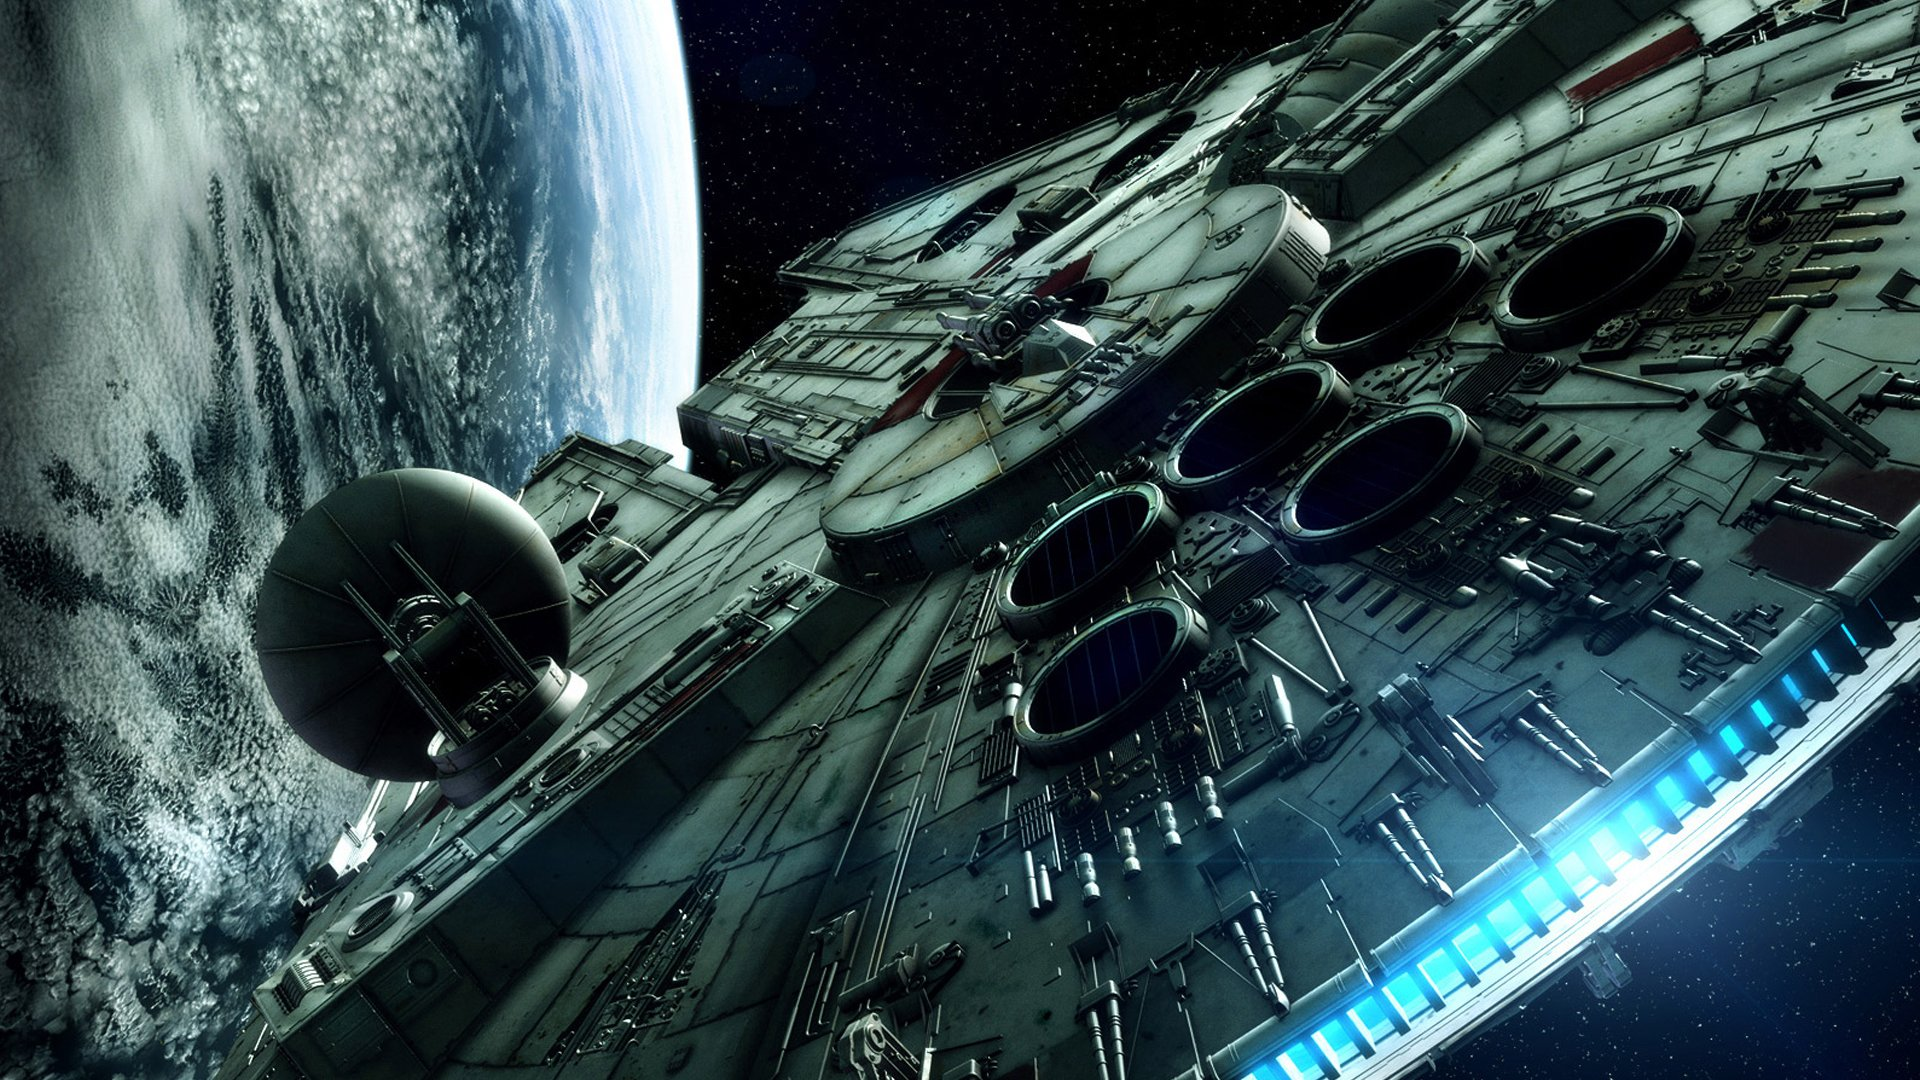 gaint-space-station-in-star-war-movie-free-download-fbulous-hd-widescreen-wallpapers-of-star-wars-movie-series